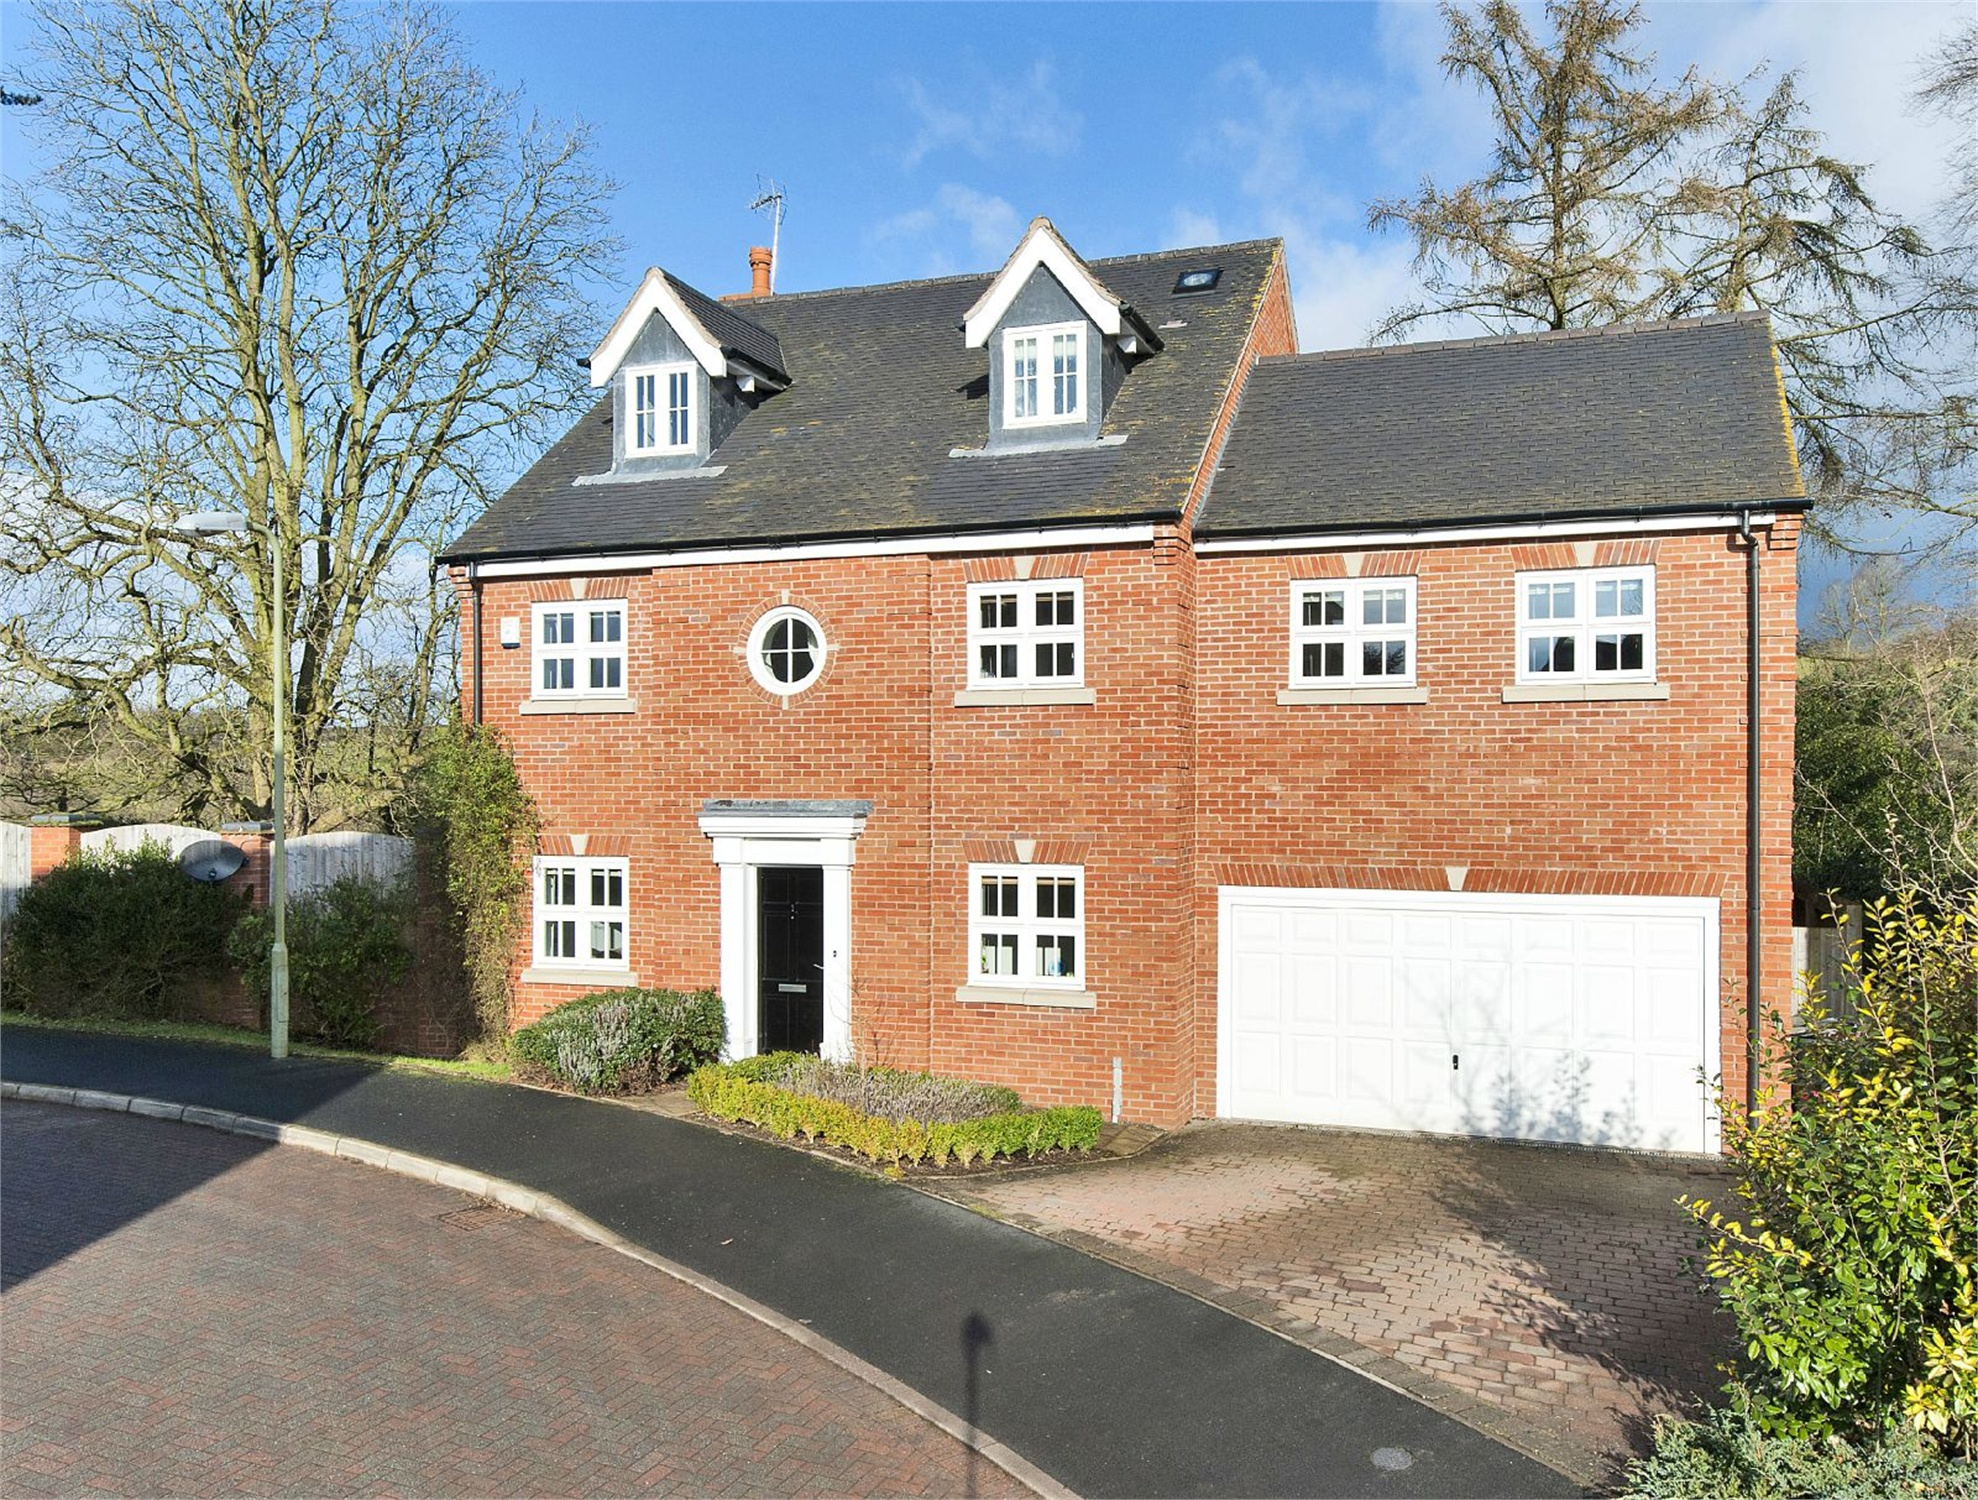 5 Bedrooms Detached House for sale in 1 Yeldside Gardens, Cleobury Mortimer, Kidderminster, DY14